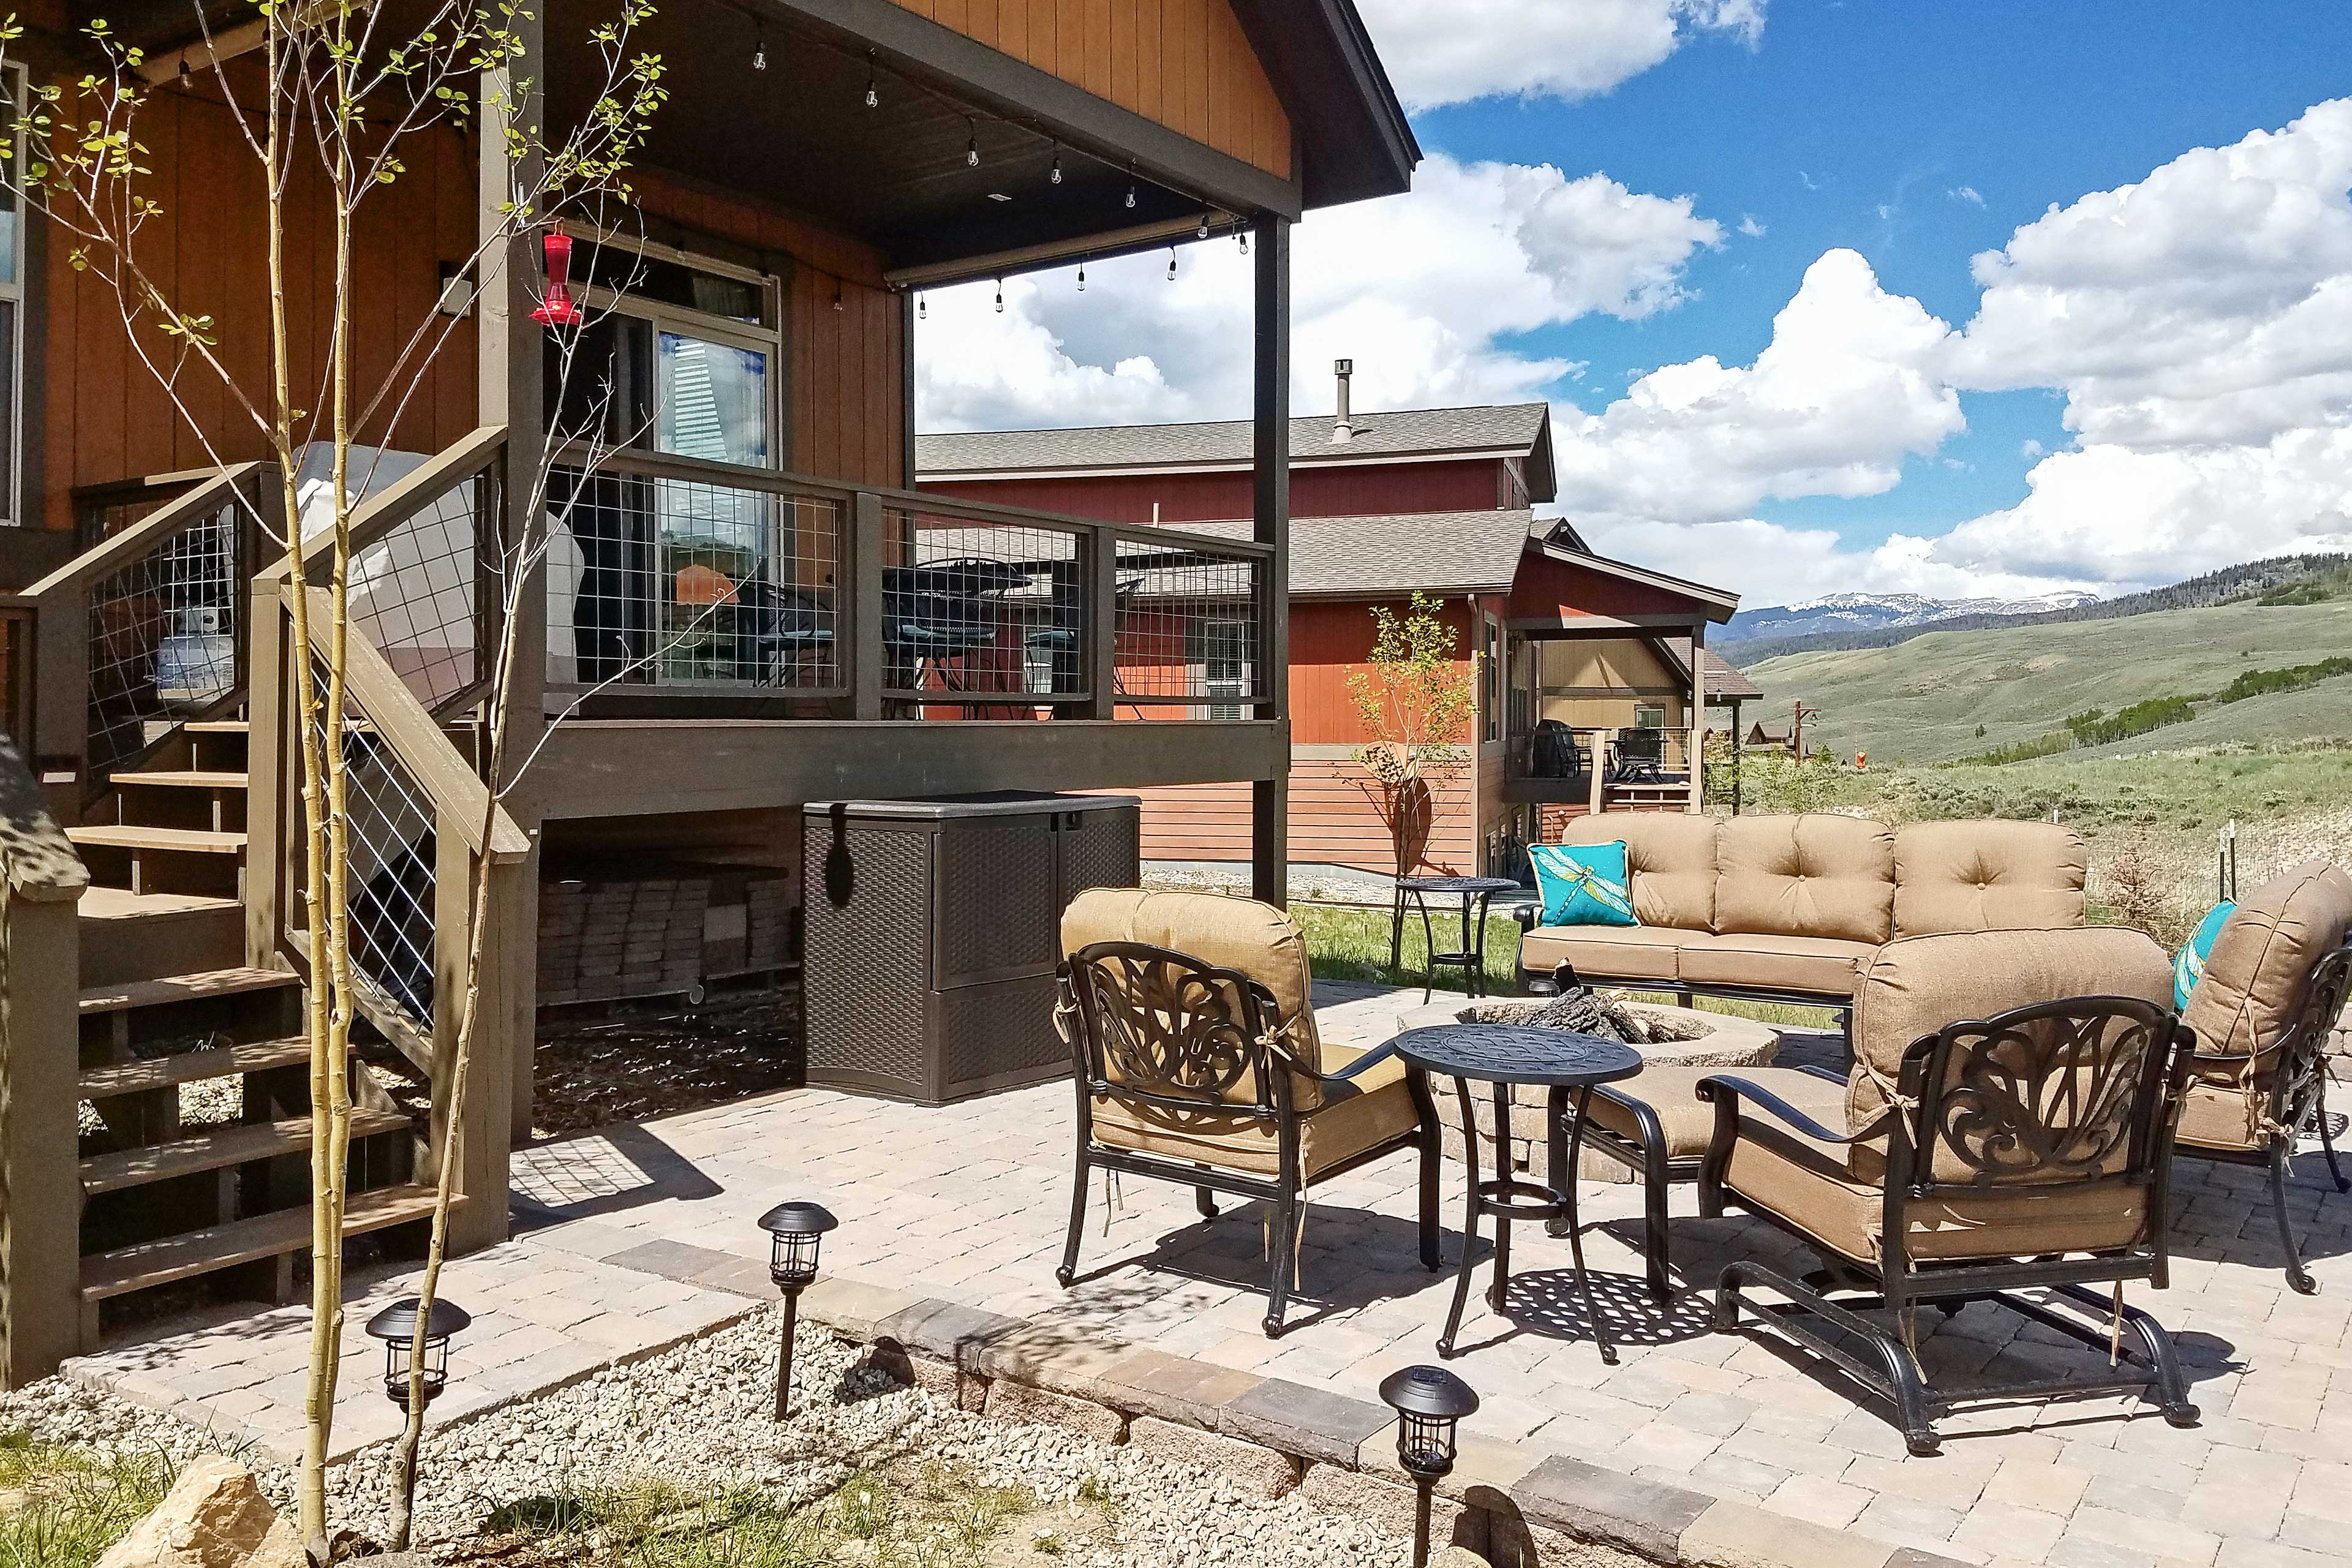 Gather around outside to enjoy the fresh air and comfortable seating.